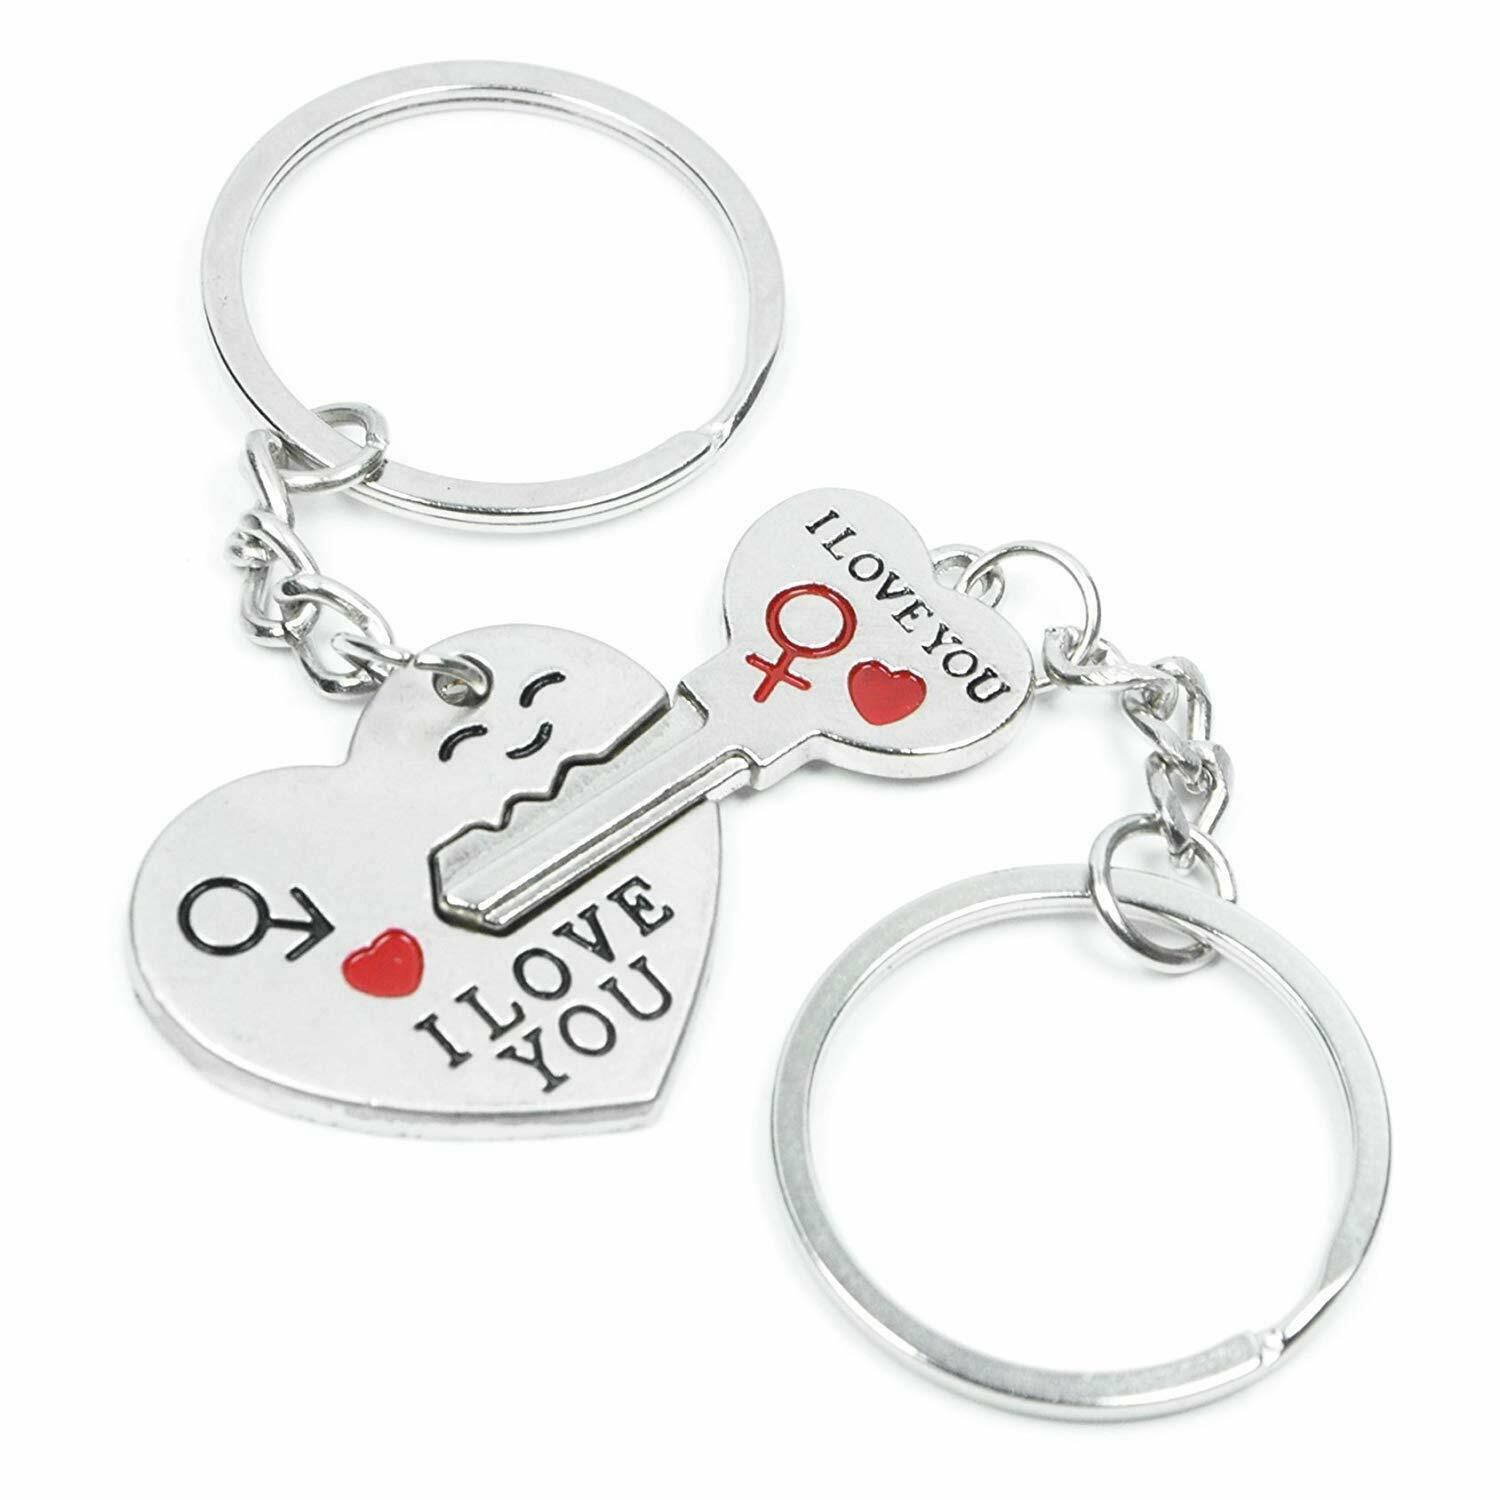 Romantic Couple Keychain Keyring Keyfob Valentine's Day Lover Gift Heart Key Set Collectibles